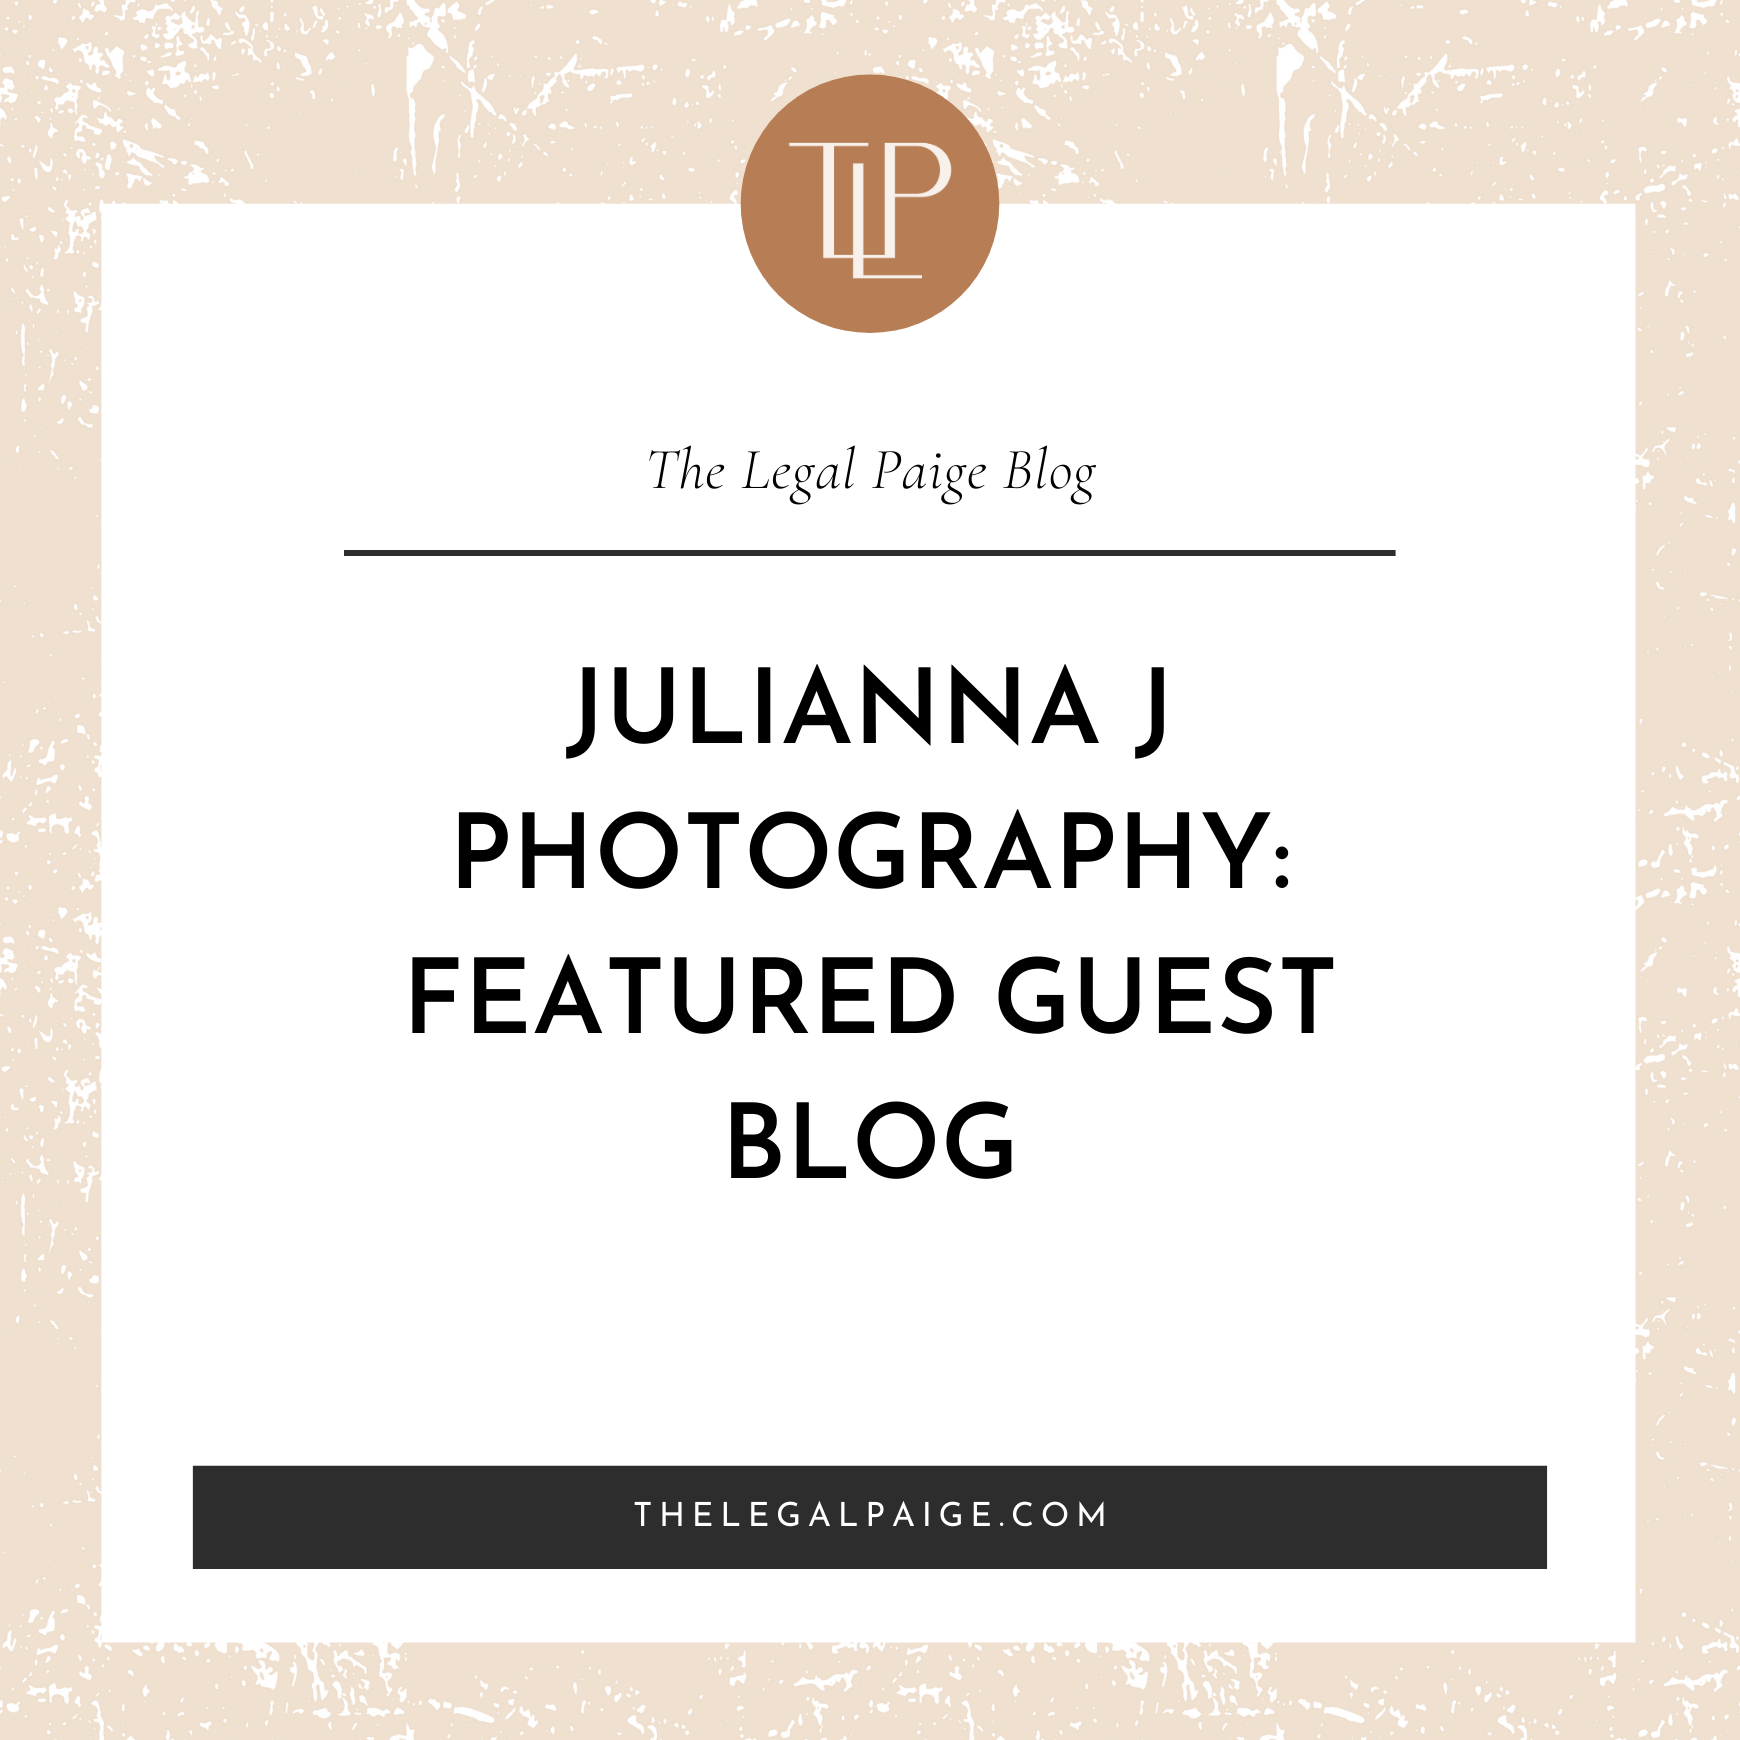 Julianna J Photography: Featured Guest Blog